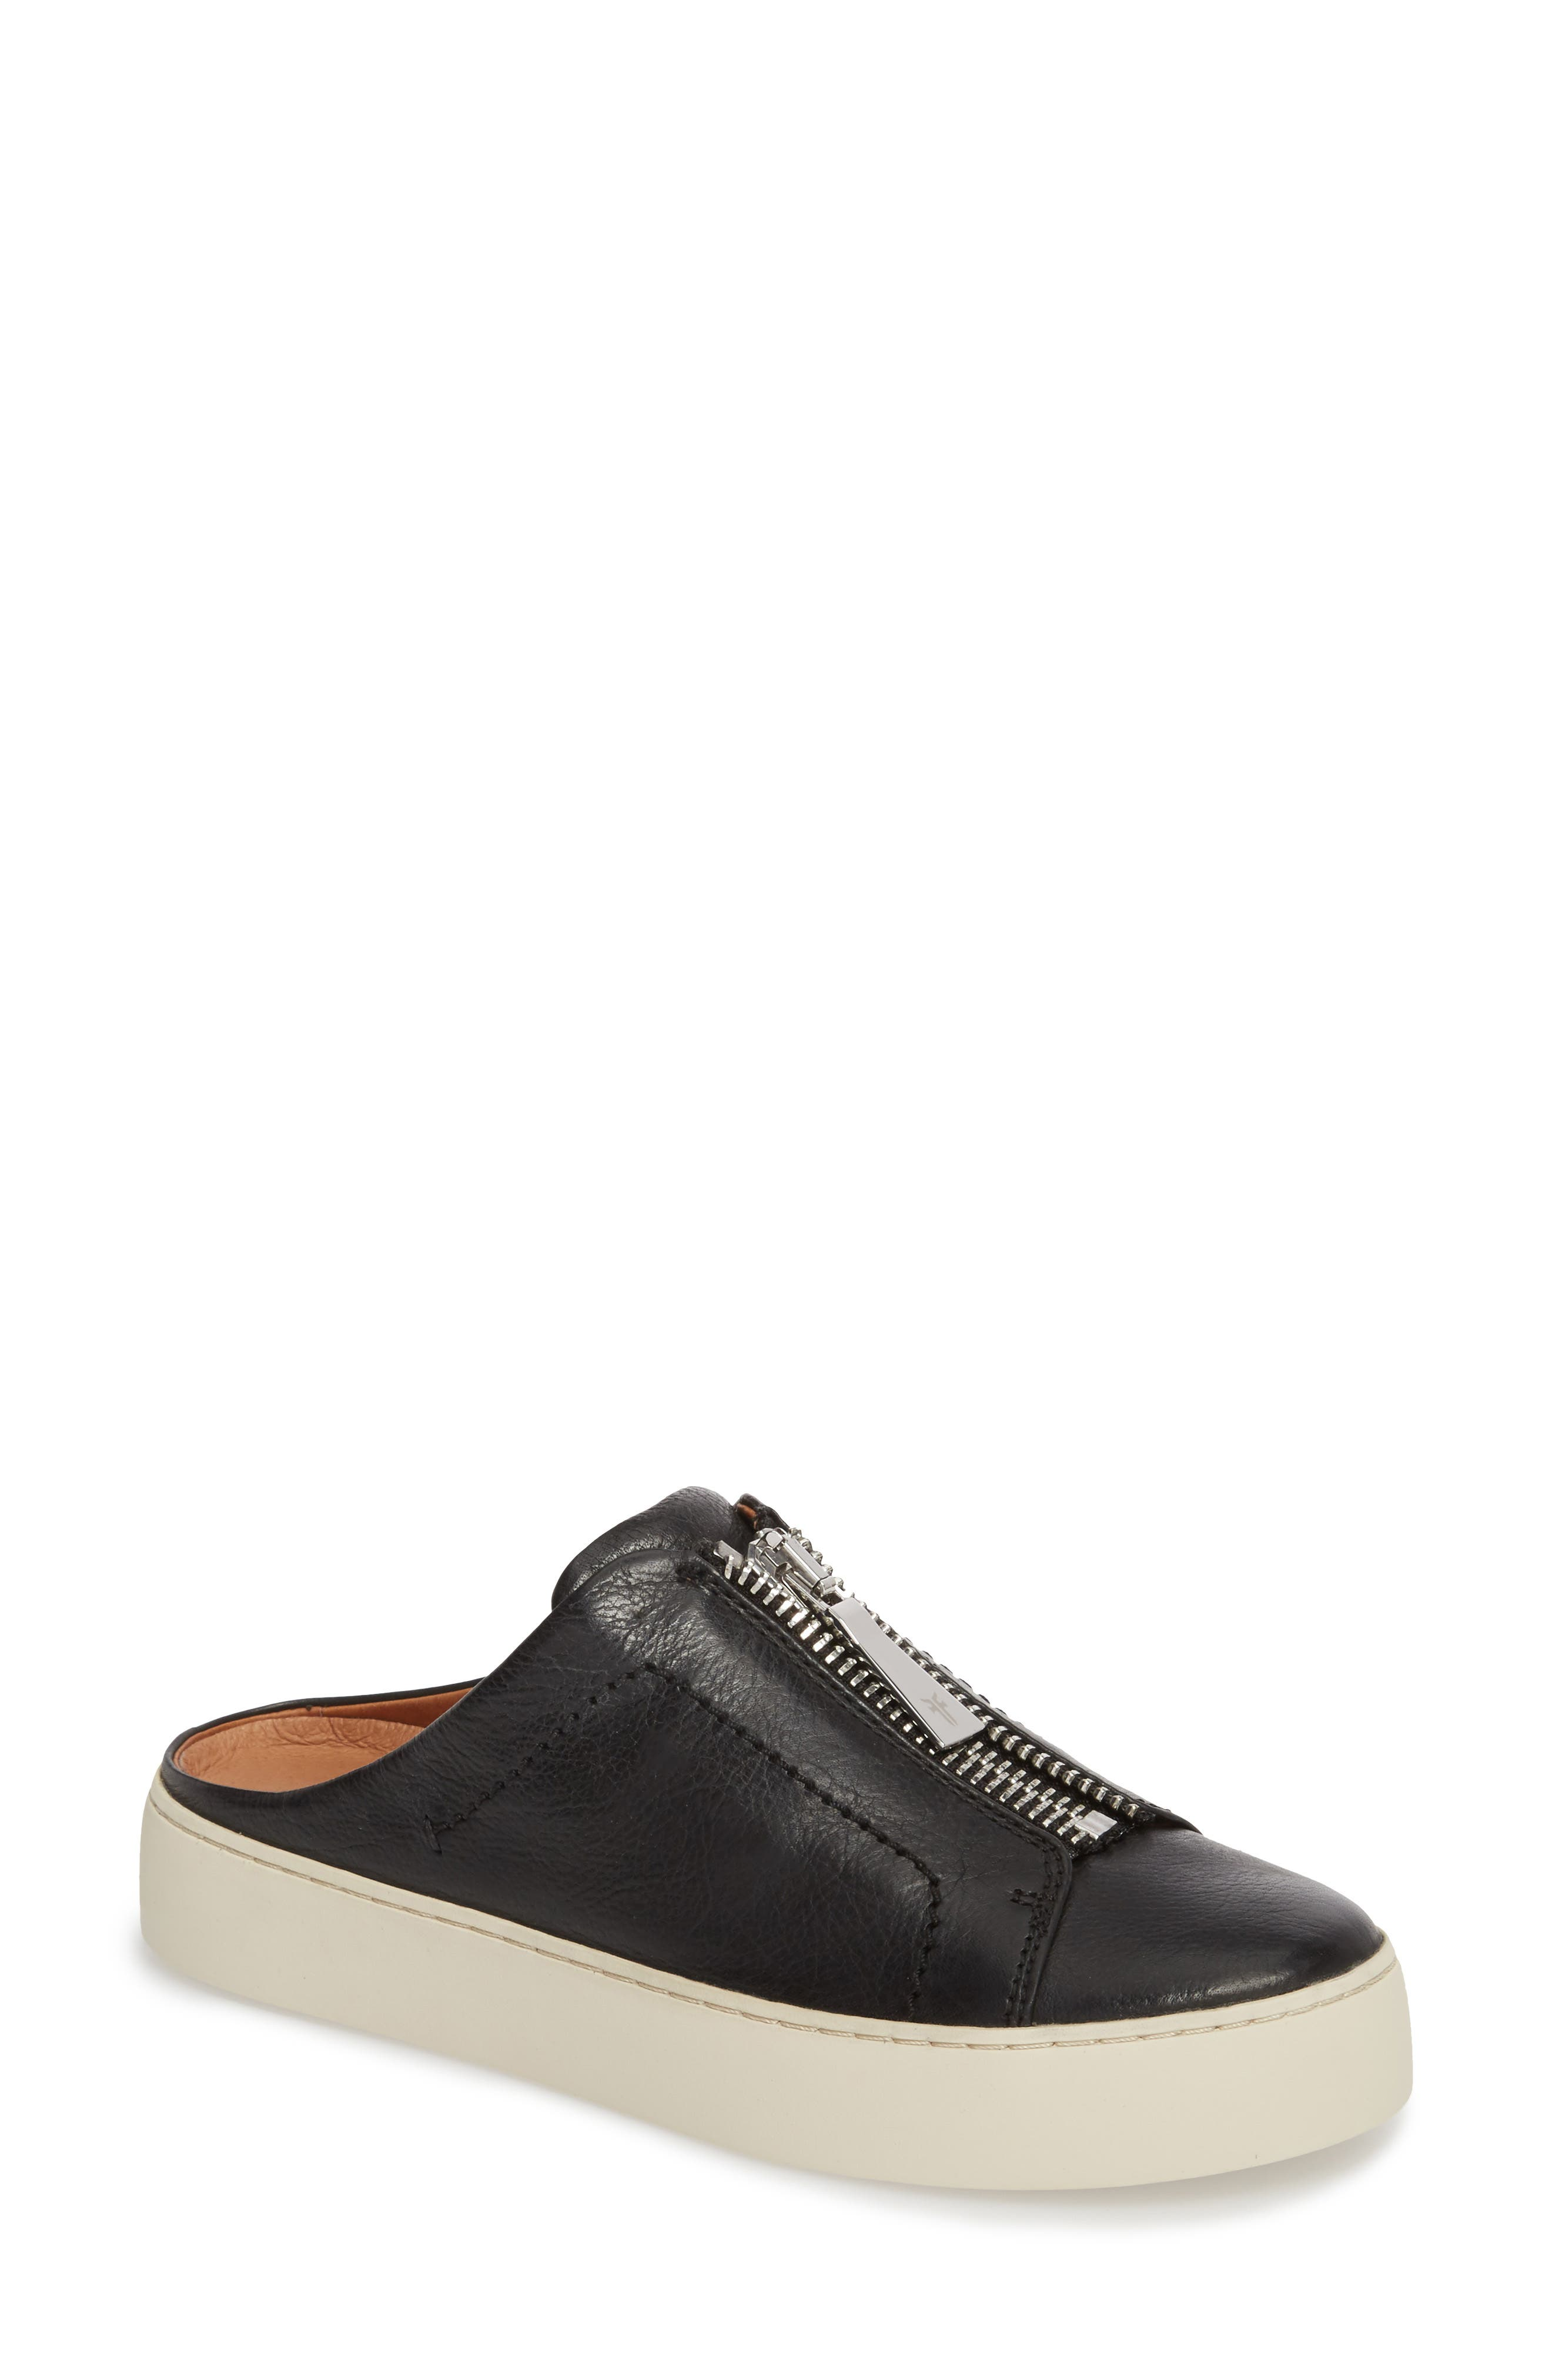 Lena Platform Sneaker Mule,                             Main thumbnail 1, color,                             Black Leather